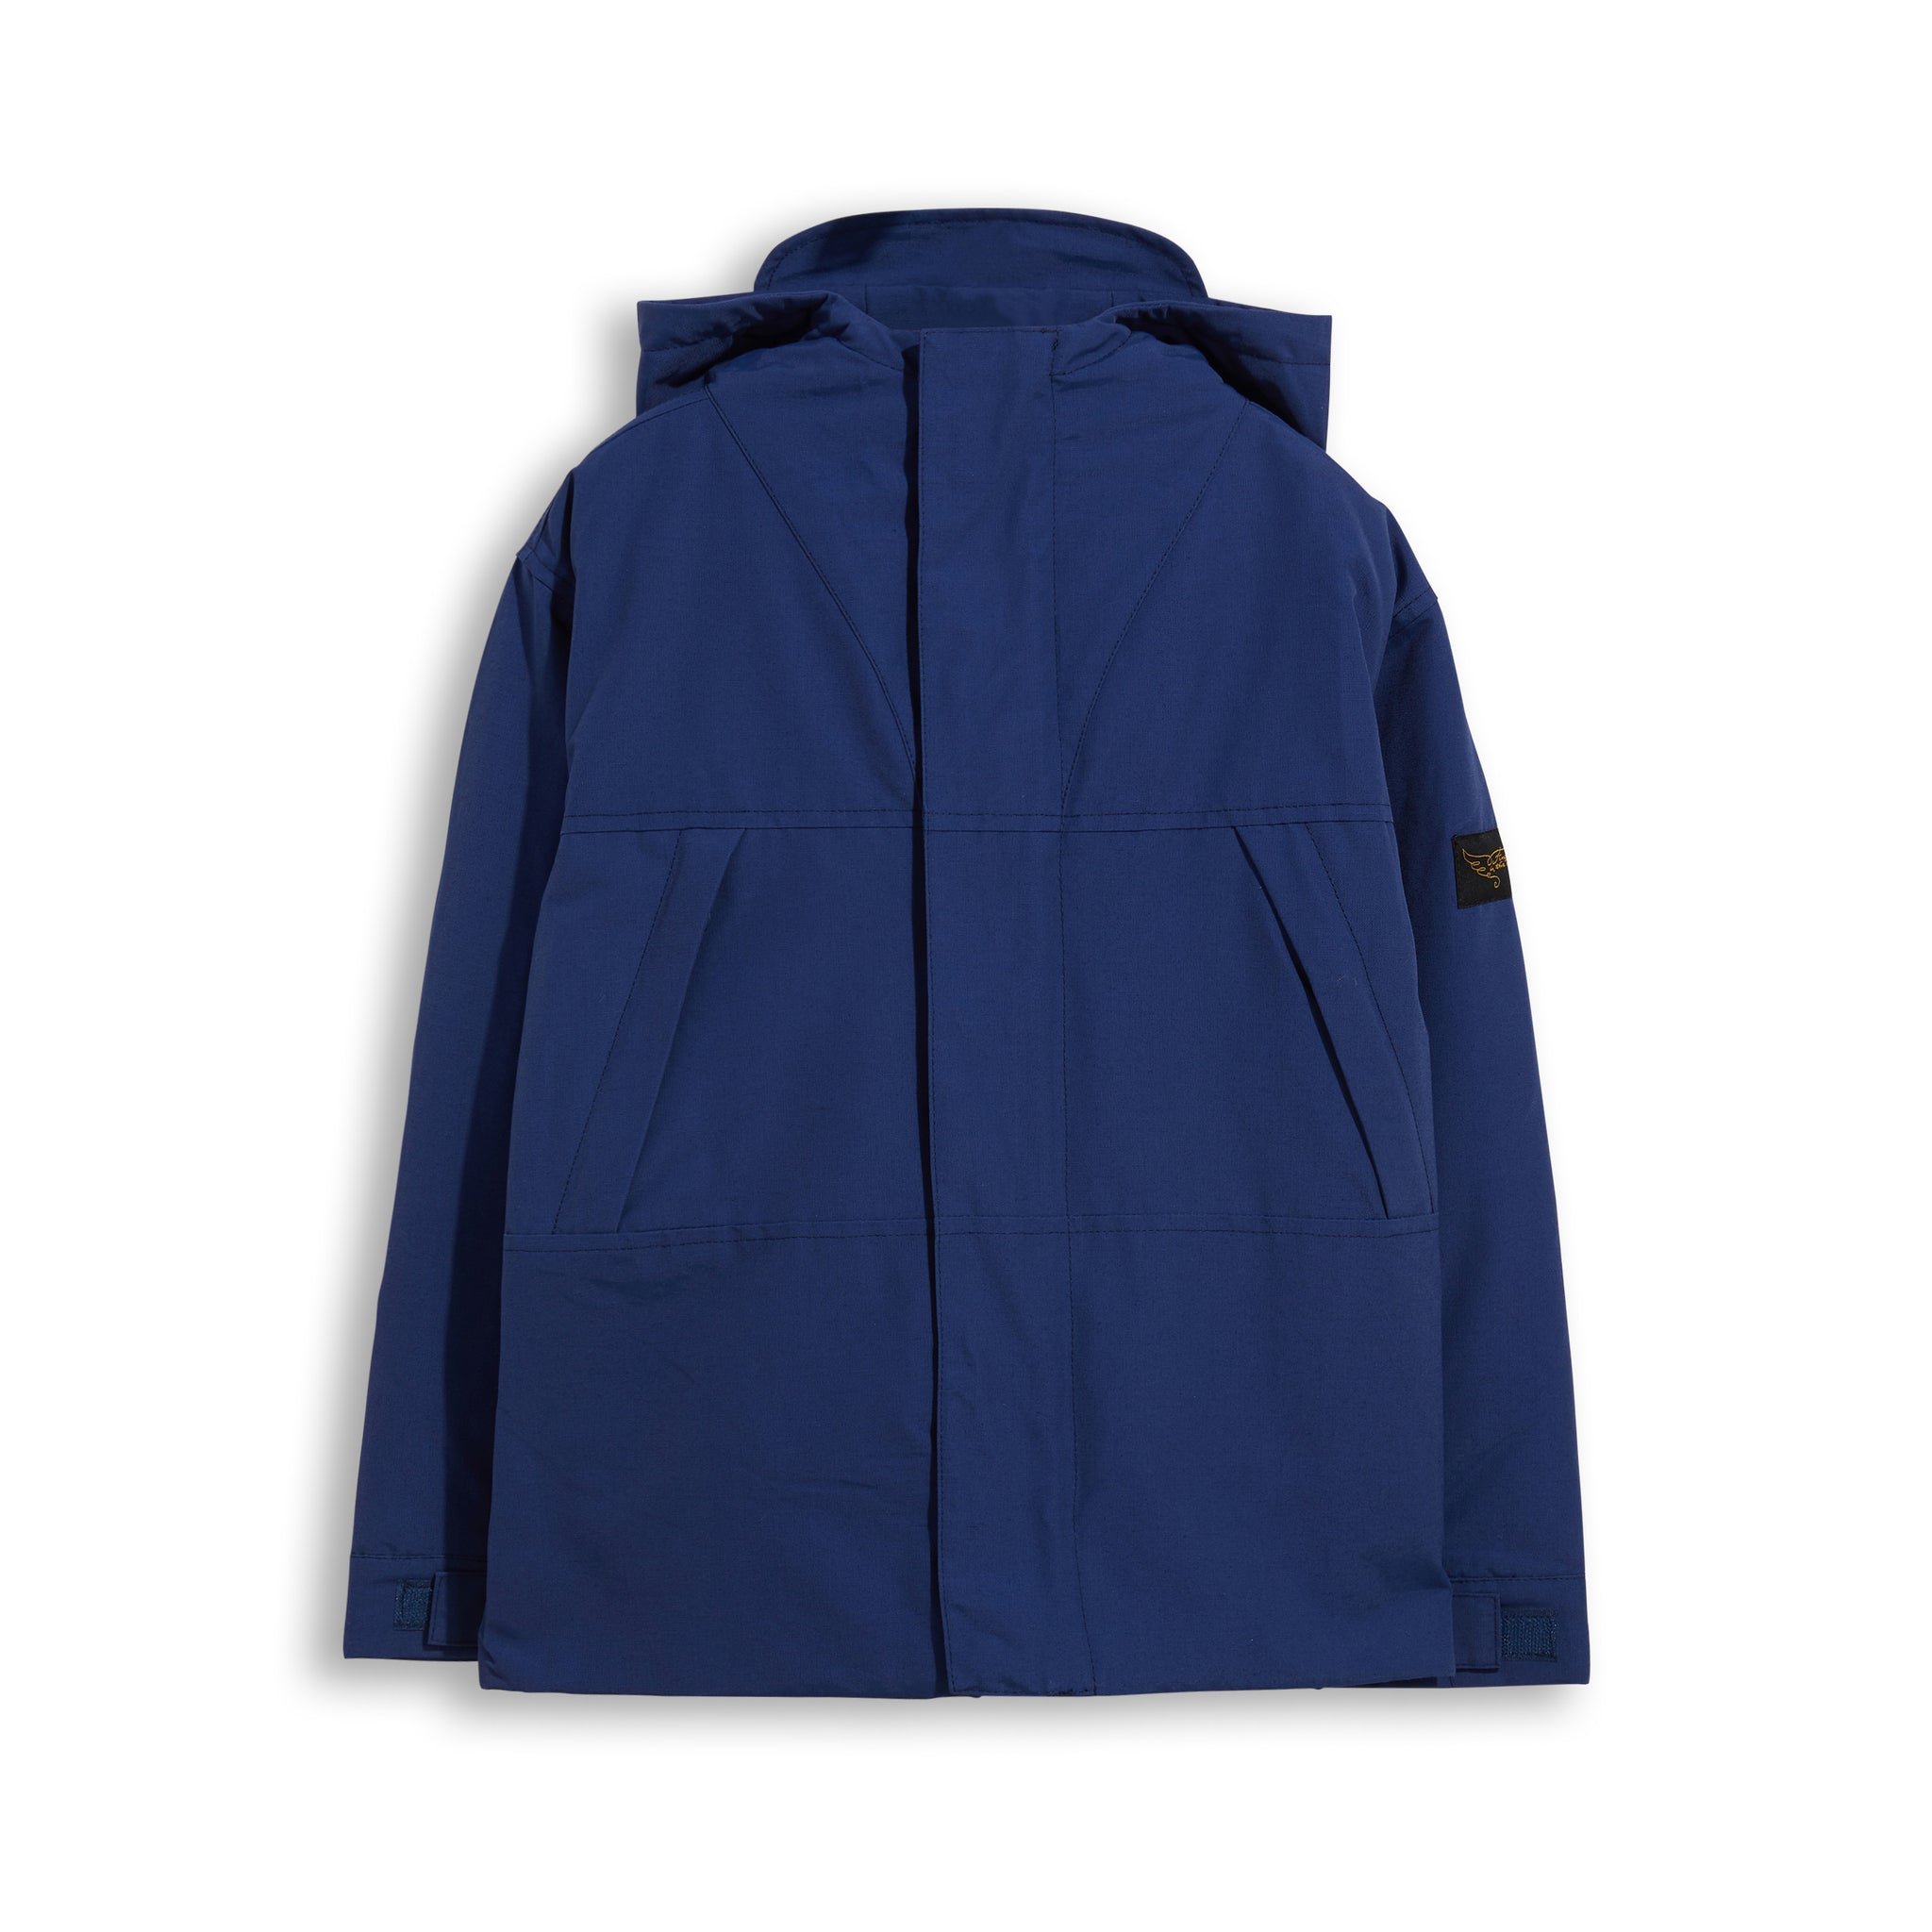 ZEPHYR Royal Blue -  Windbreaker Jacket 1